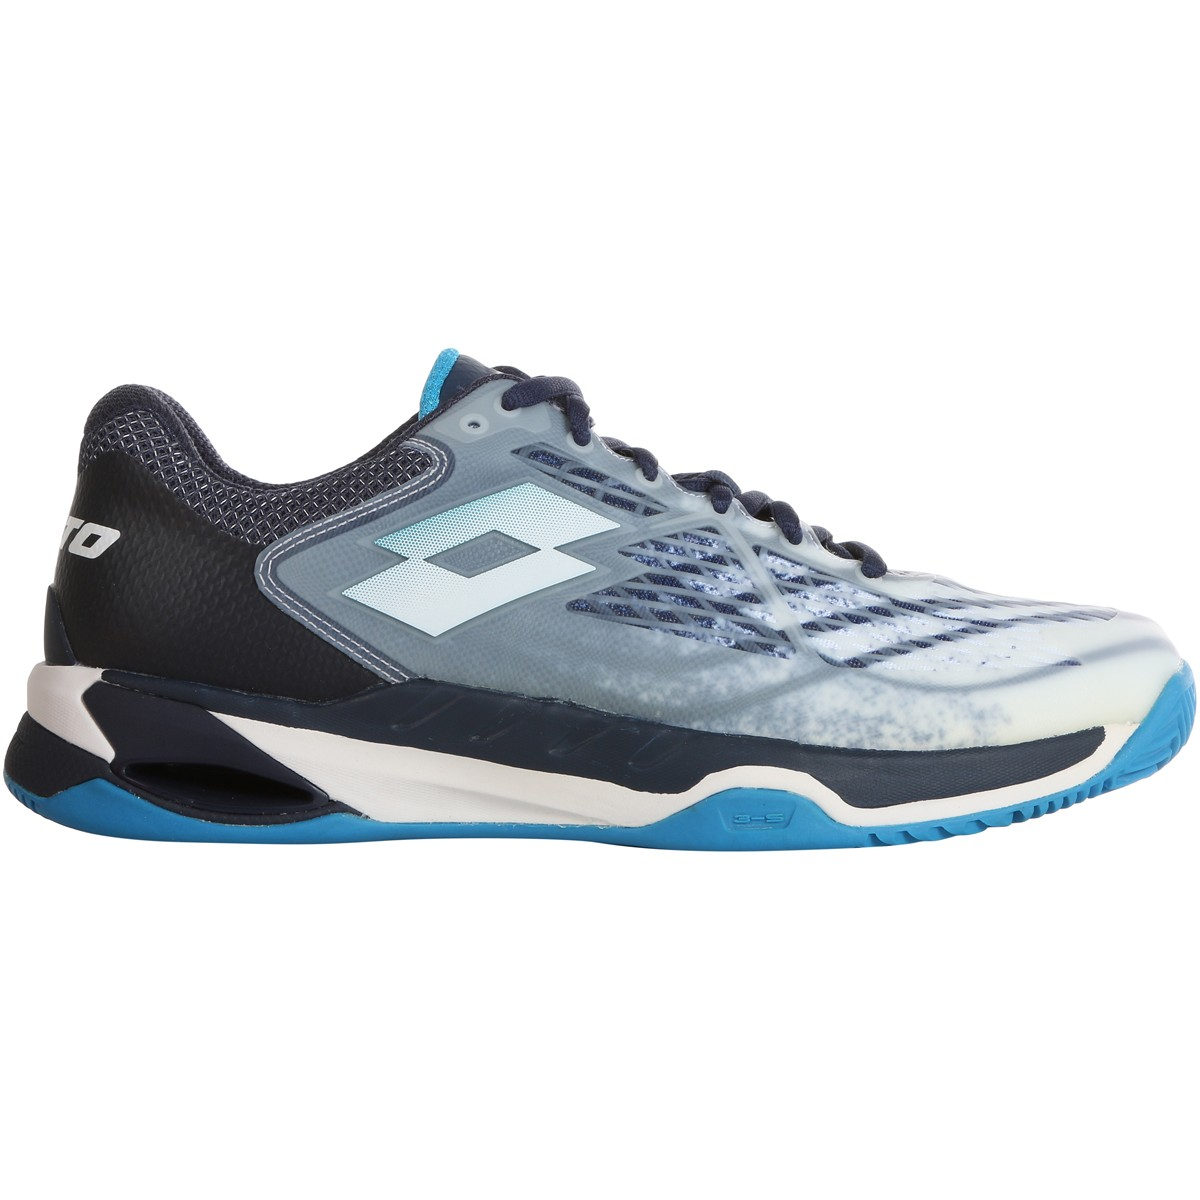 CHAUSSURES LOTTO MIRAGE 100 TERRE BATTUE